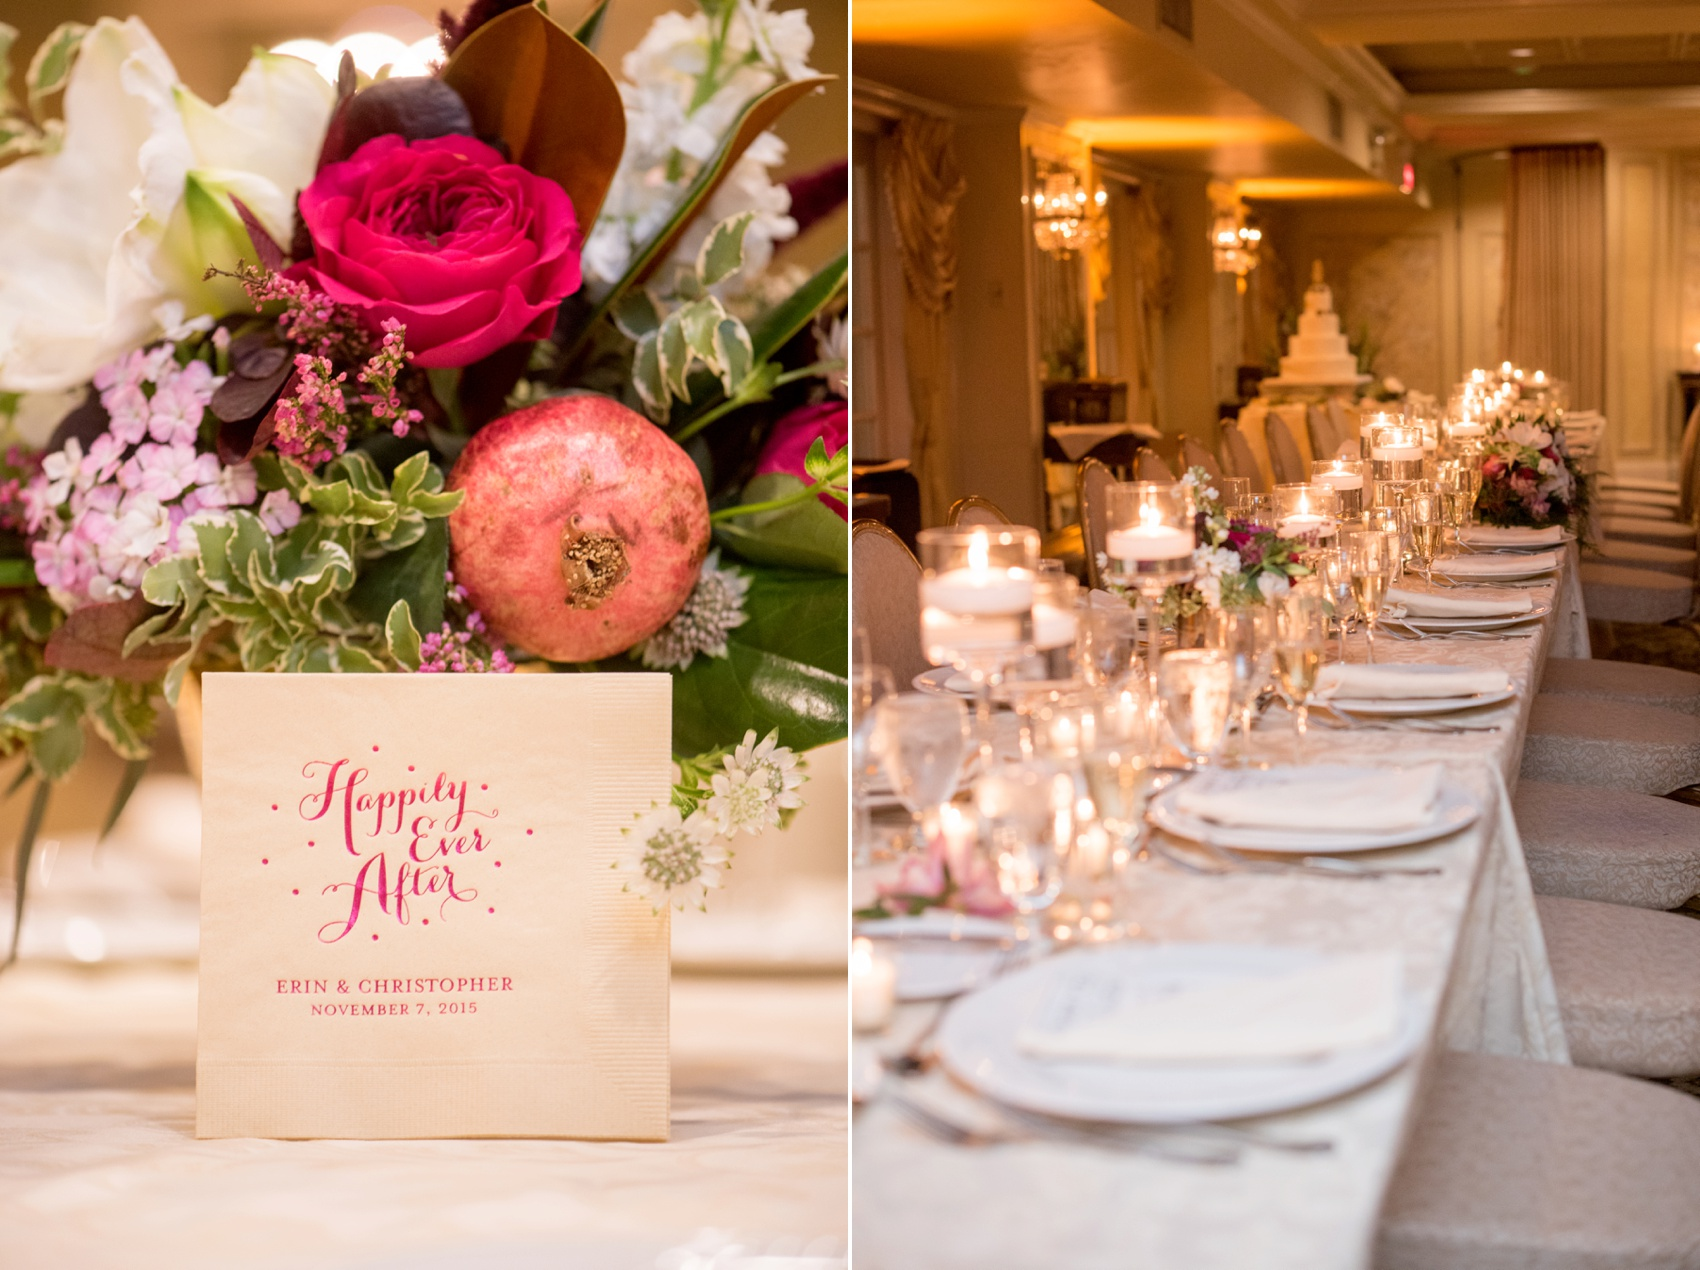 Olde Mill Inn wedding ceremony by Mikkel Paige Photography, NYC and Raleigh wedding photographer. Flowers by The Arrangement with Disney inspired Happily Ever After cocktail napkins.